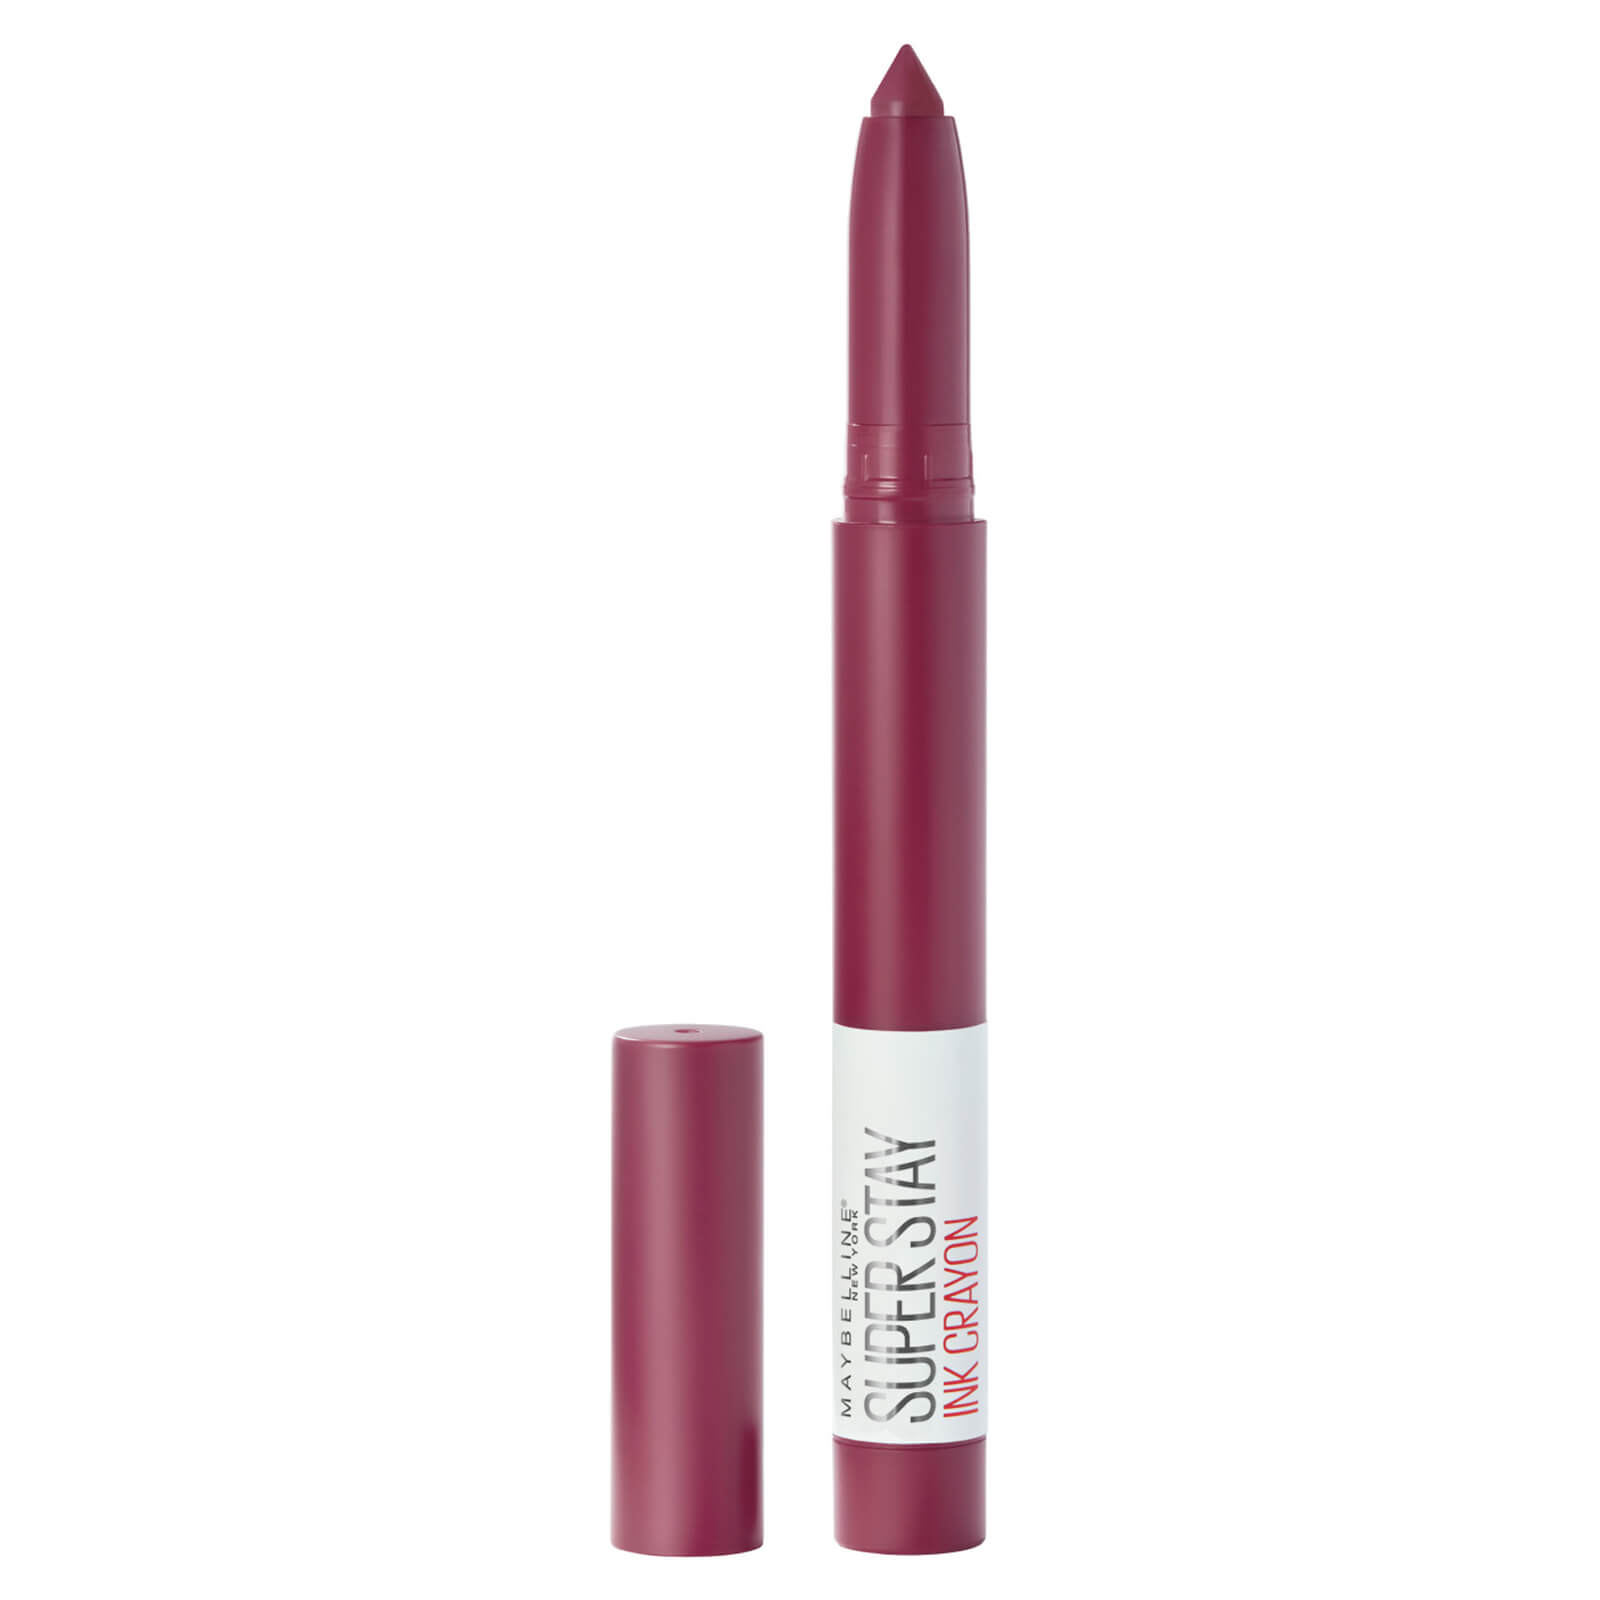 Maybelline Superstay Matte Ink Crayon Lipstick 32g (Various Shades) - 60 Accept a Dare